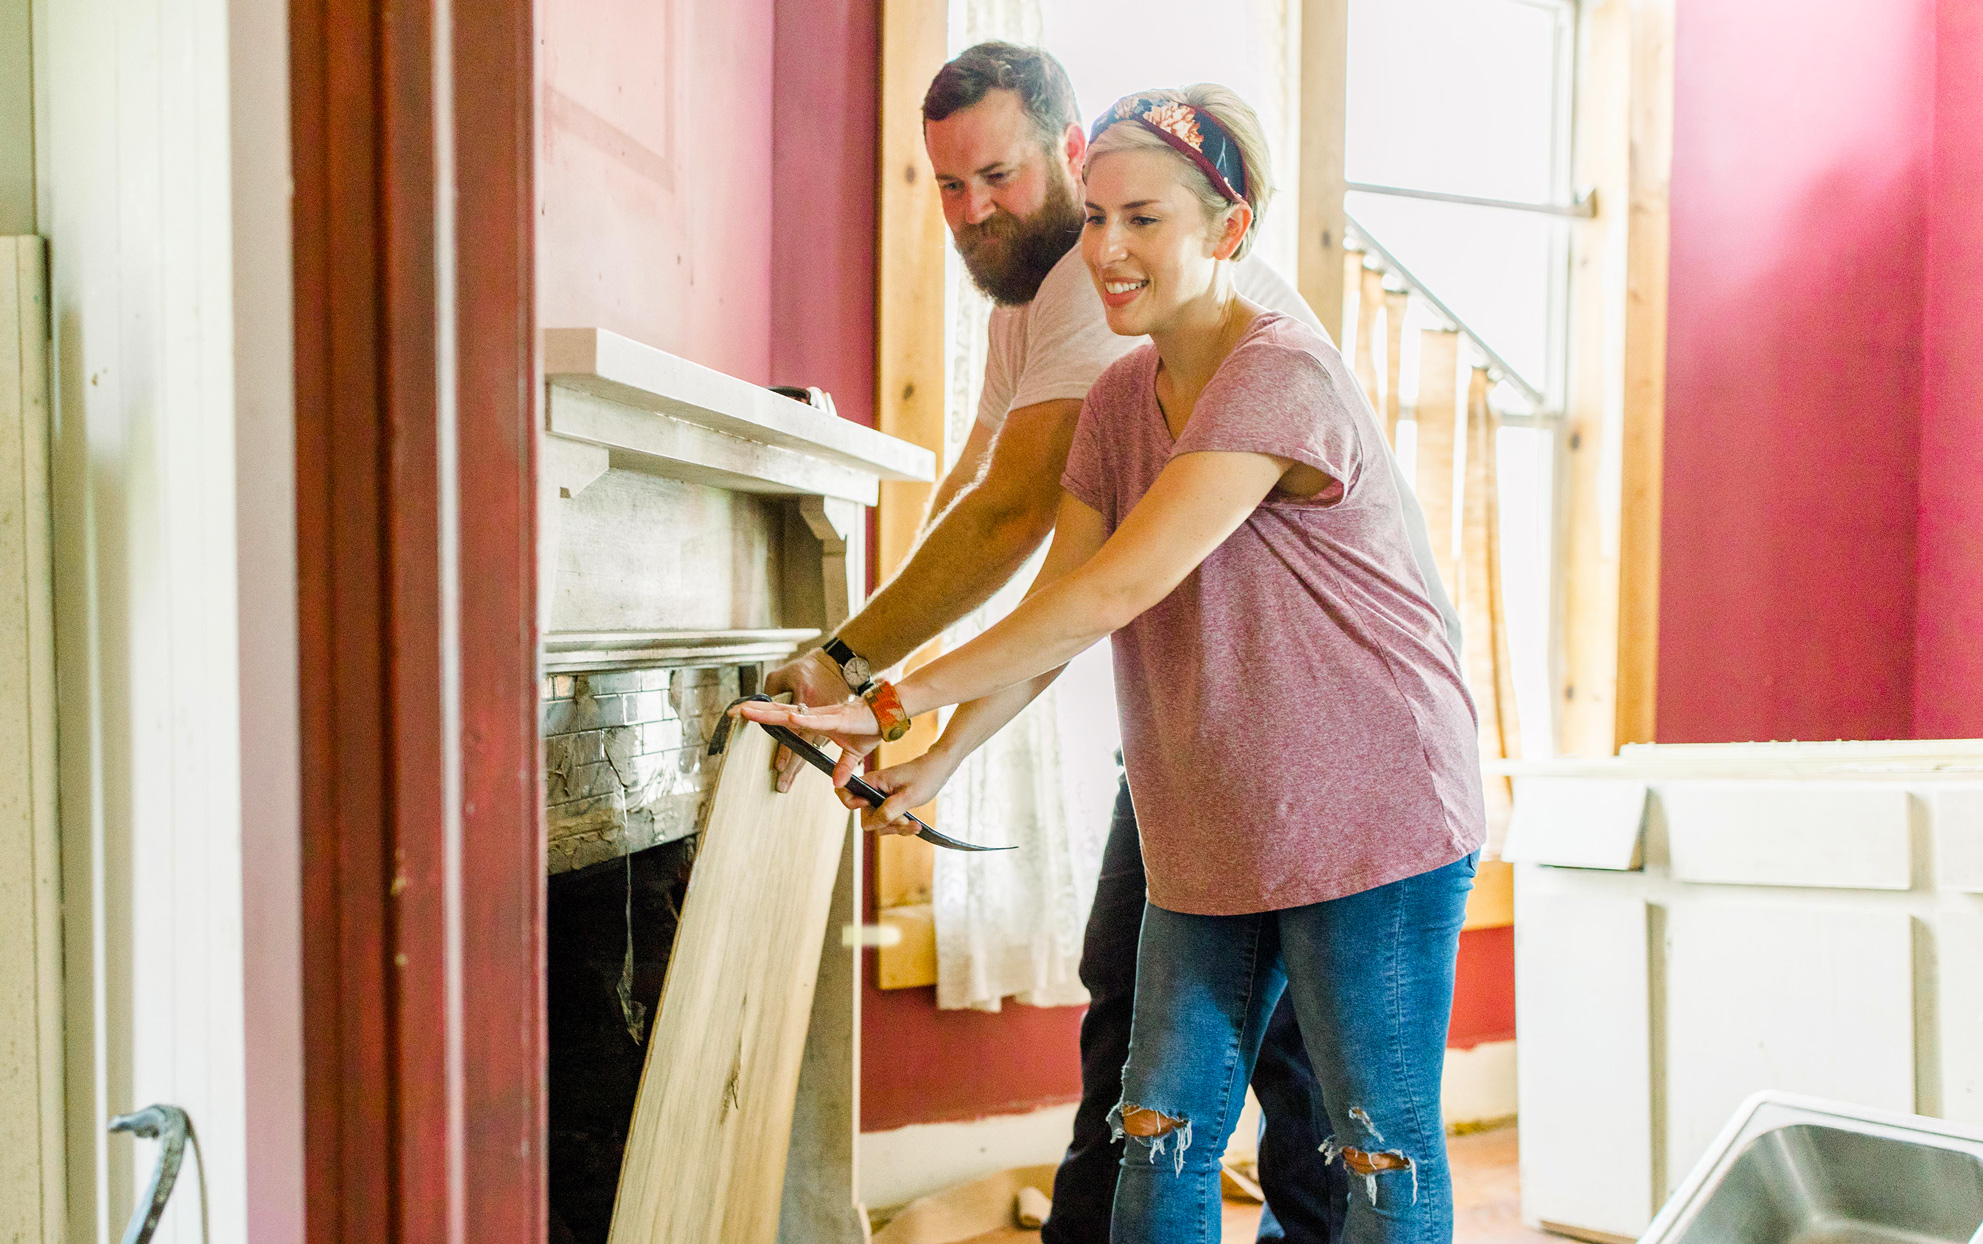 Erin and Ben Napier of HGTV's Home Town working on a home